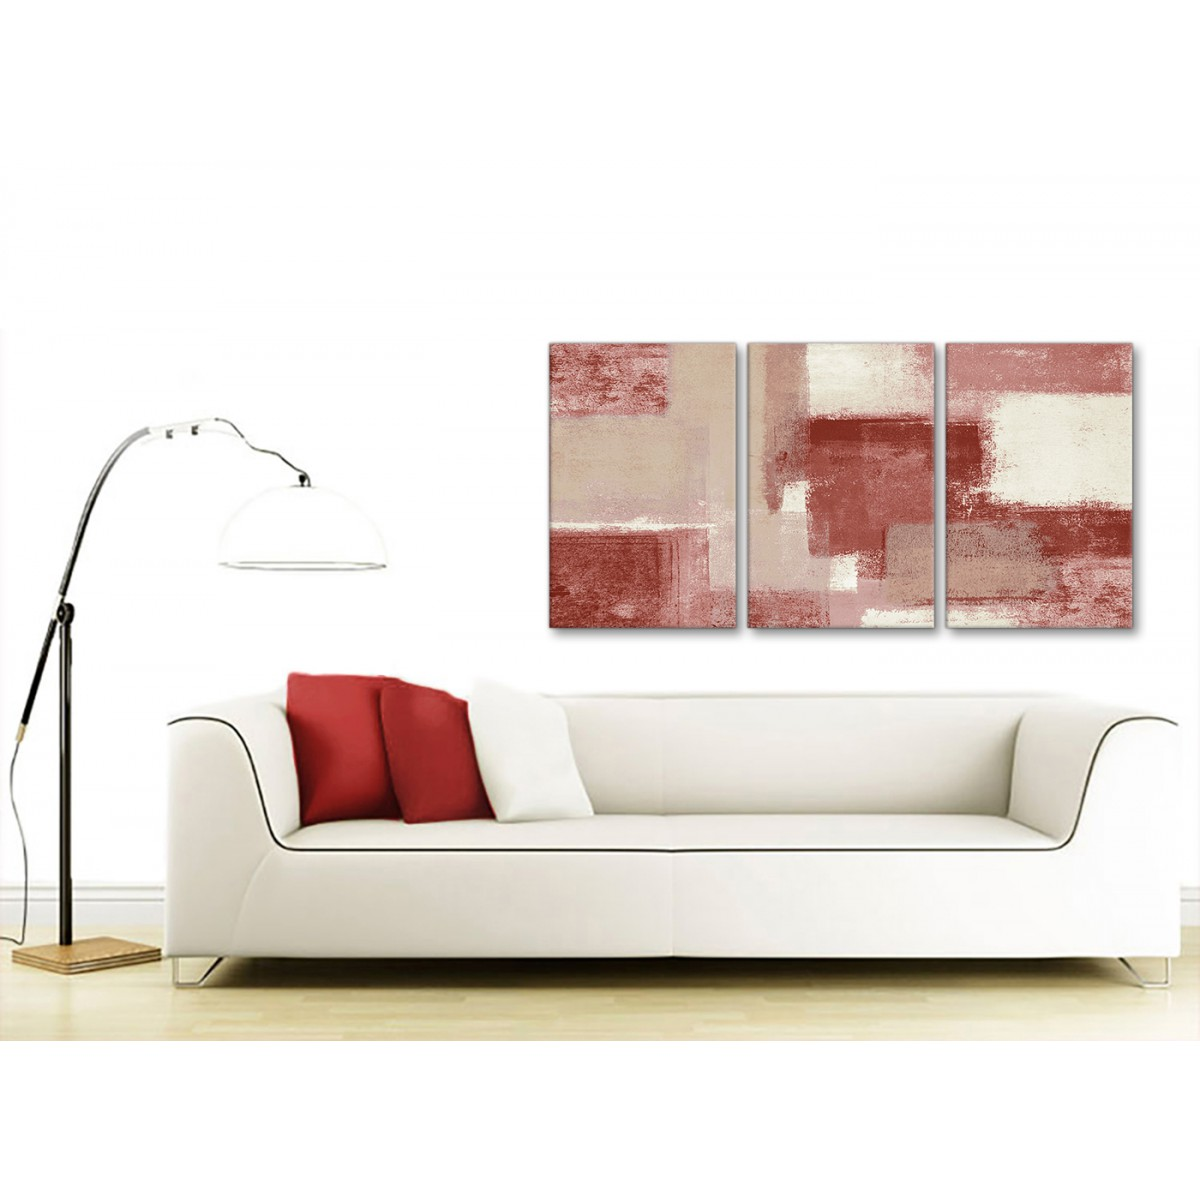 Bedroom Canvas Wall Art Uk: 3 Piece Red And Cream Kitchen Canvas Wall Art Accessories